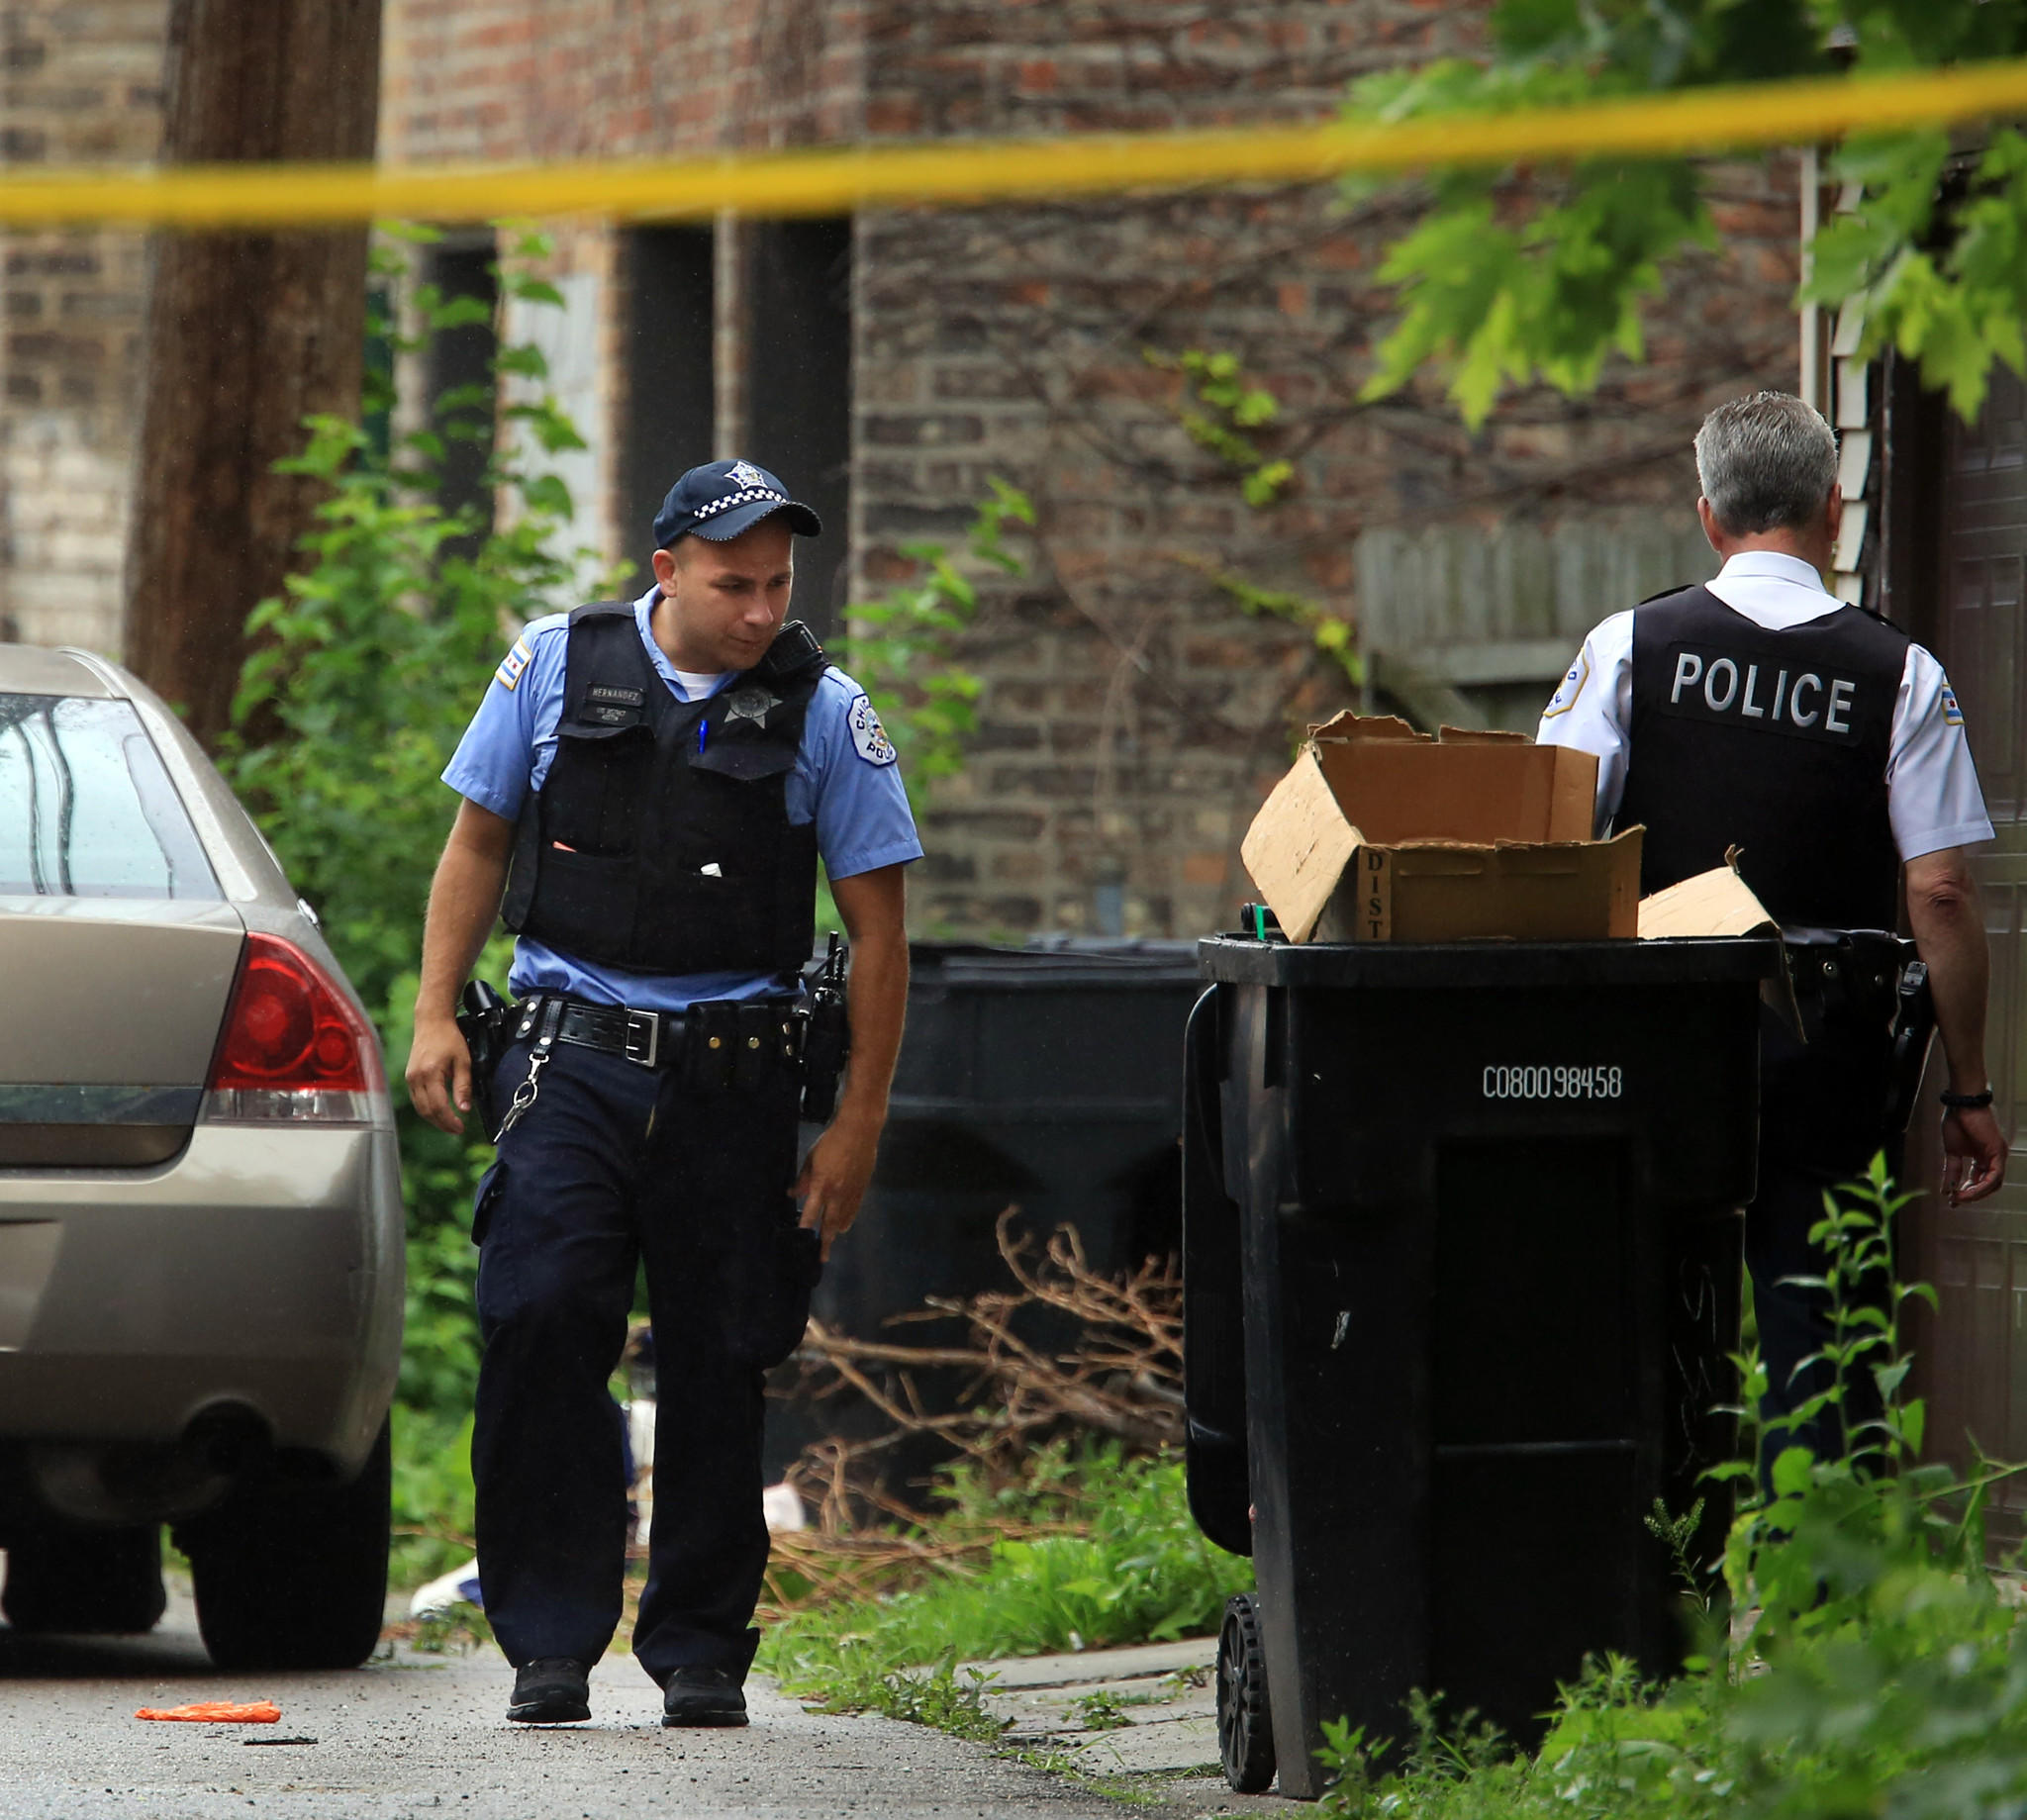 Chicago Police at the scene of a shooting Wednesday in the alley west of the 500 block of North Pine Avenue in Chicago.